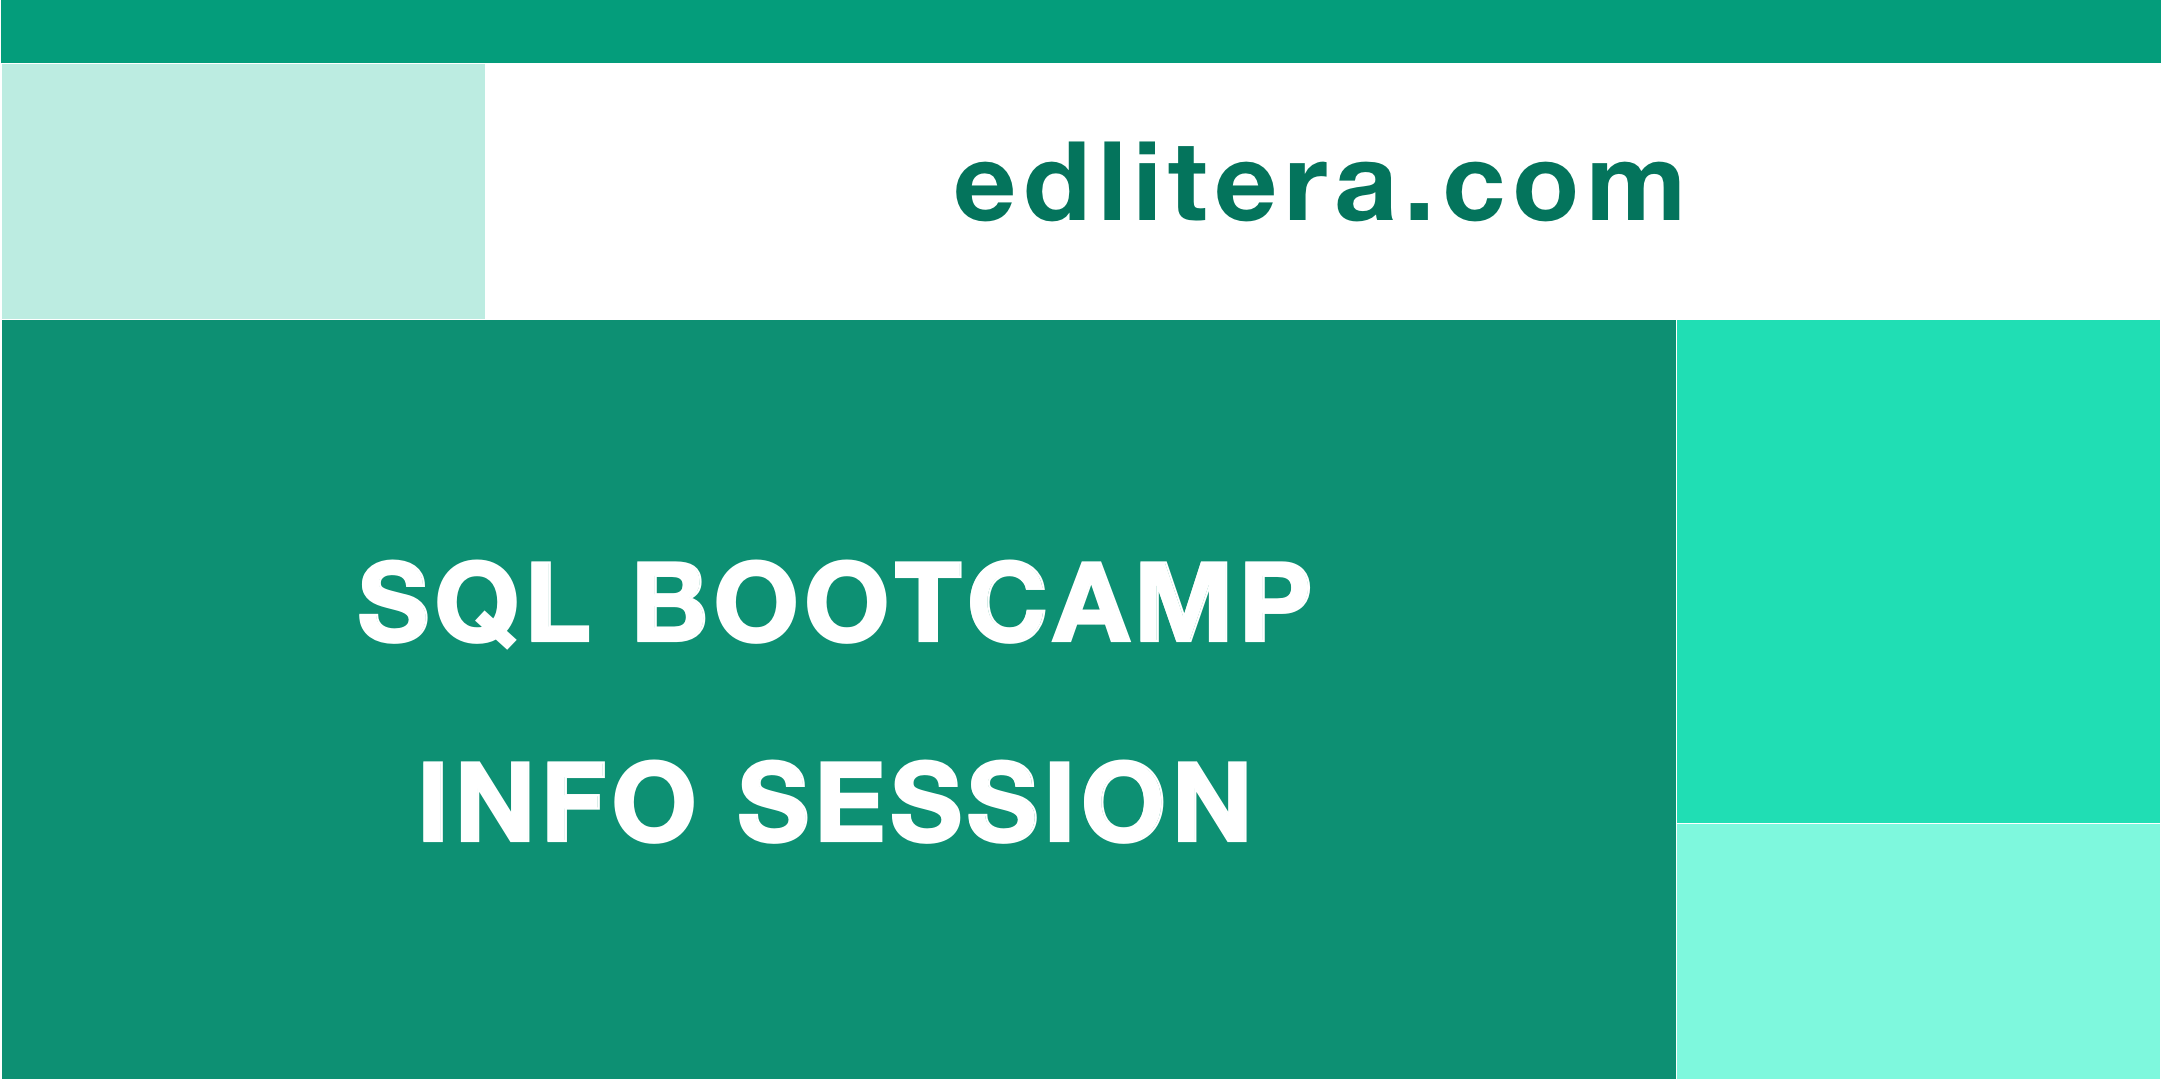 Pittsburgh SQL Bootcamp Info Session